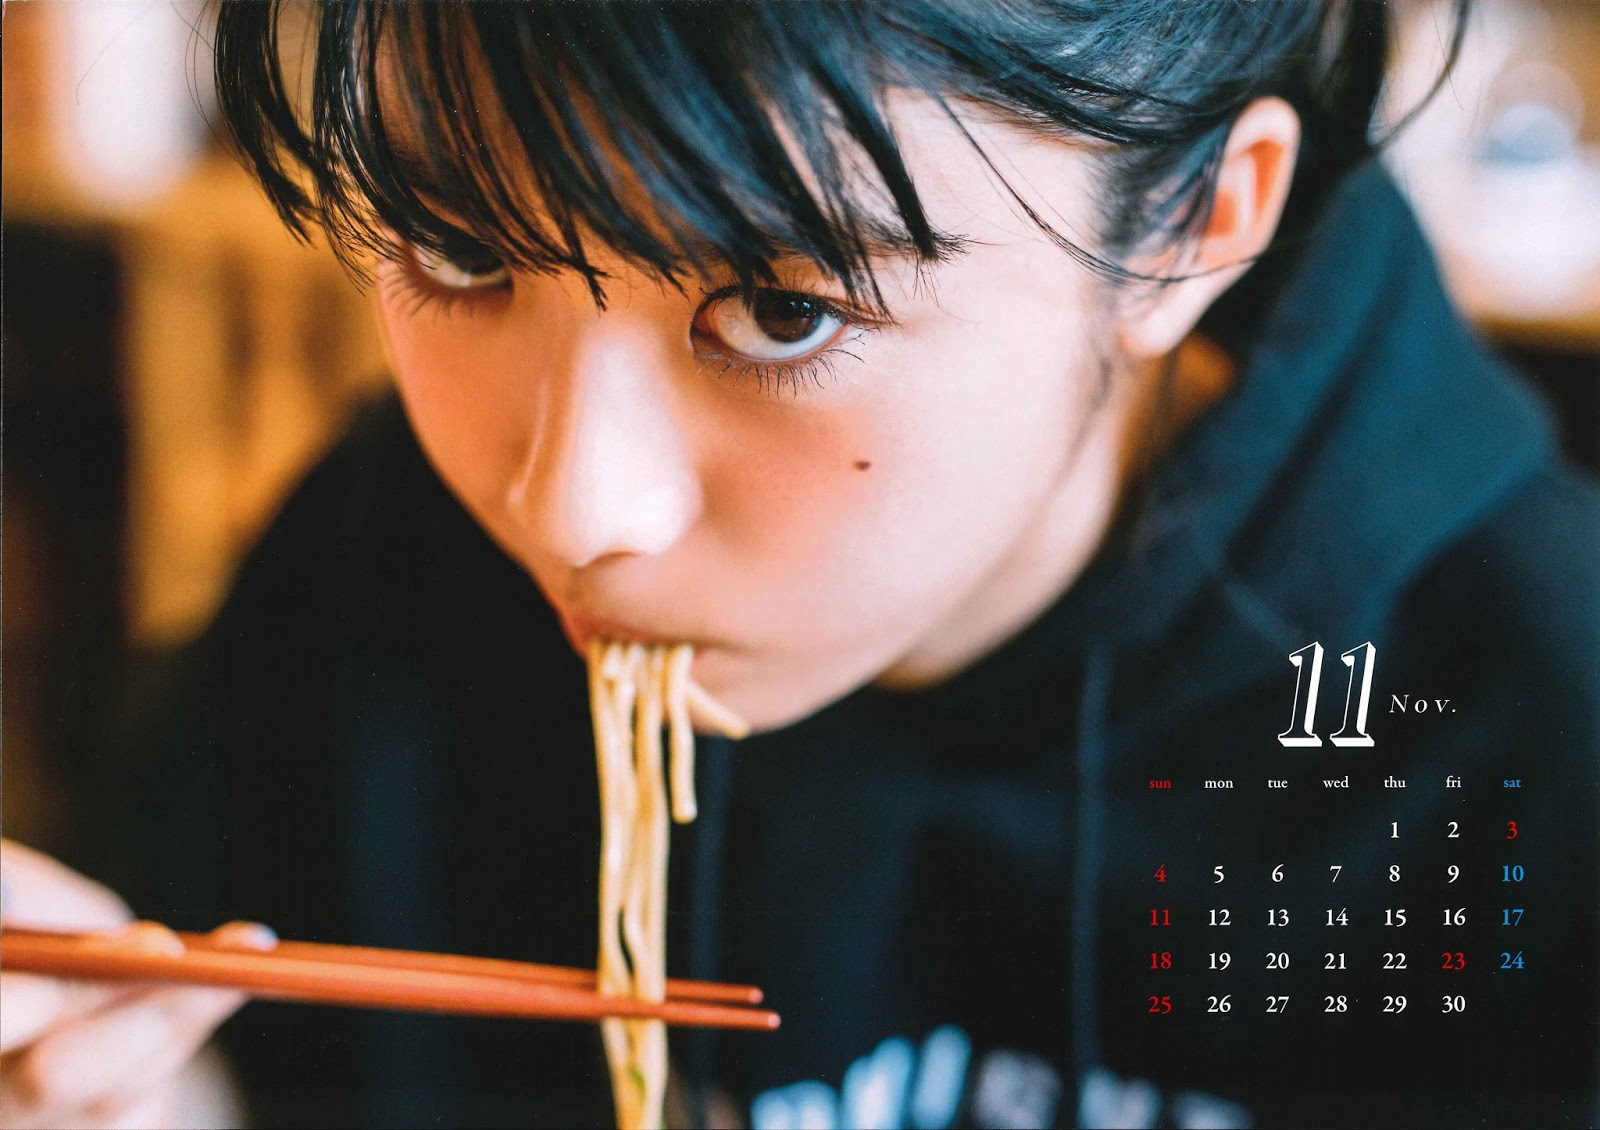 Fumika-CalendarBook-025.jpg